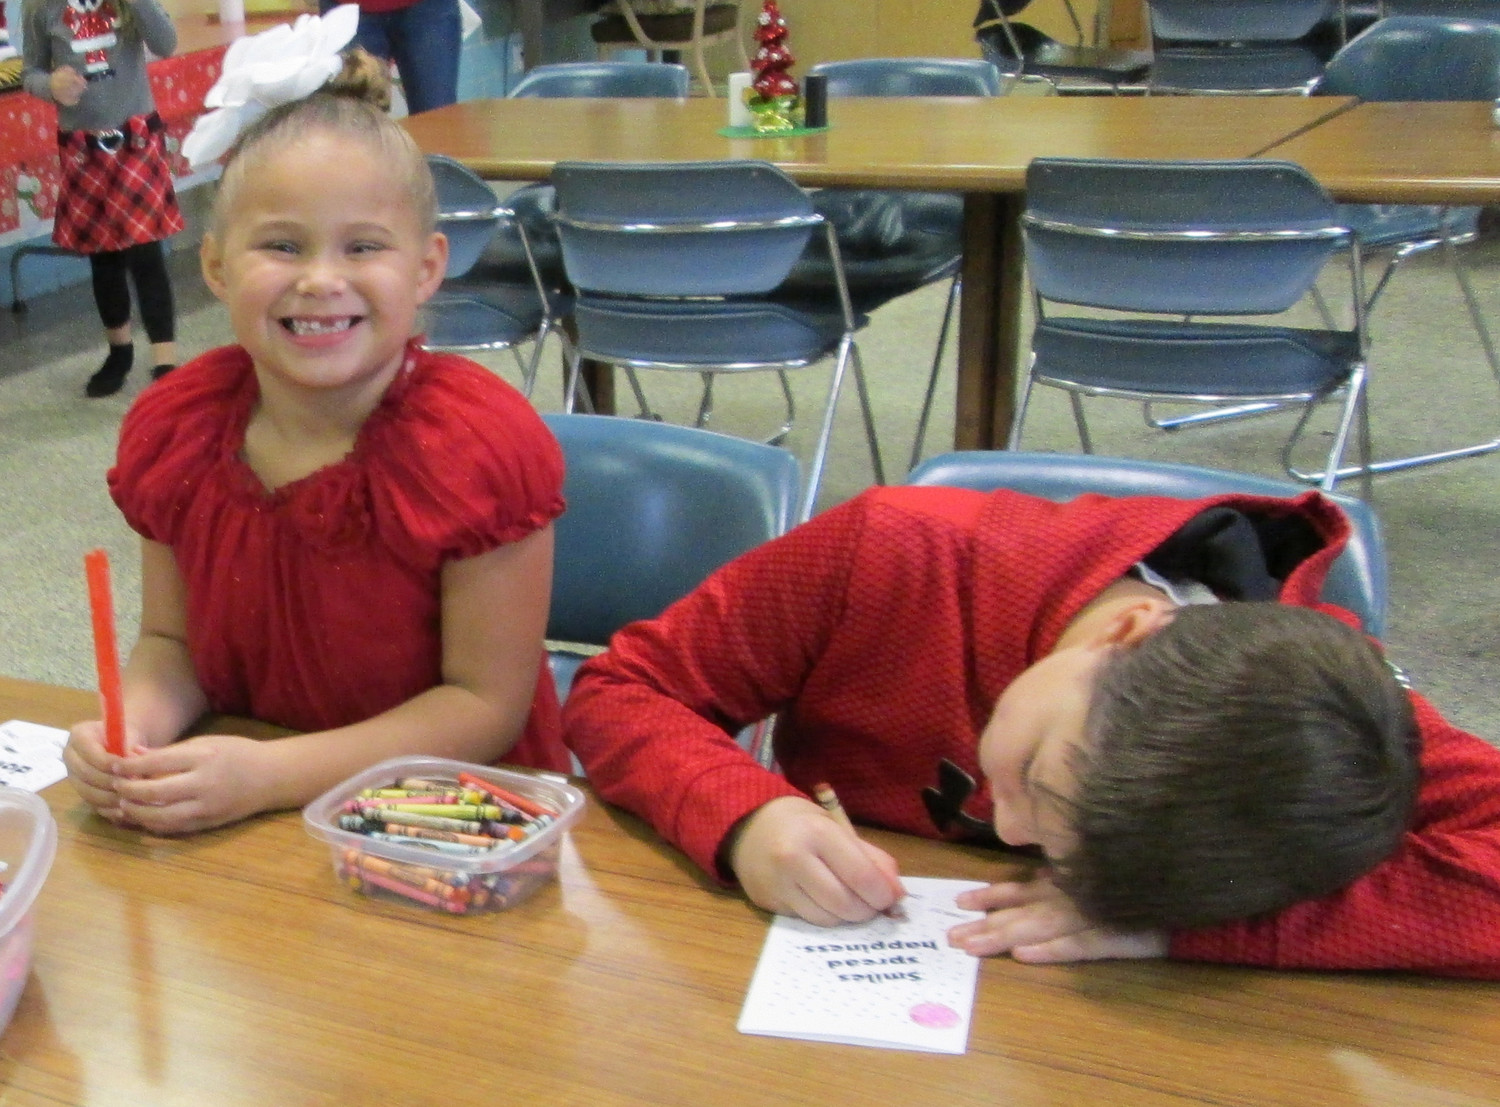 Youngsters work at the Royalton Borough REMA Holiday Party on Dec. 2.